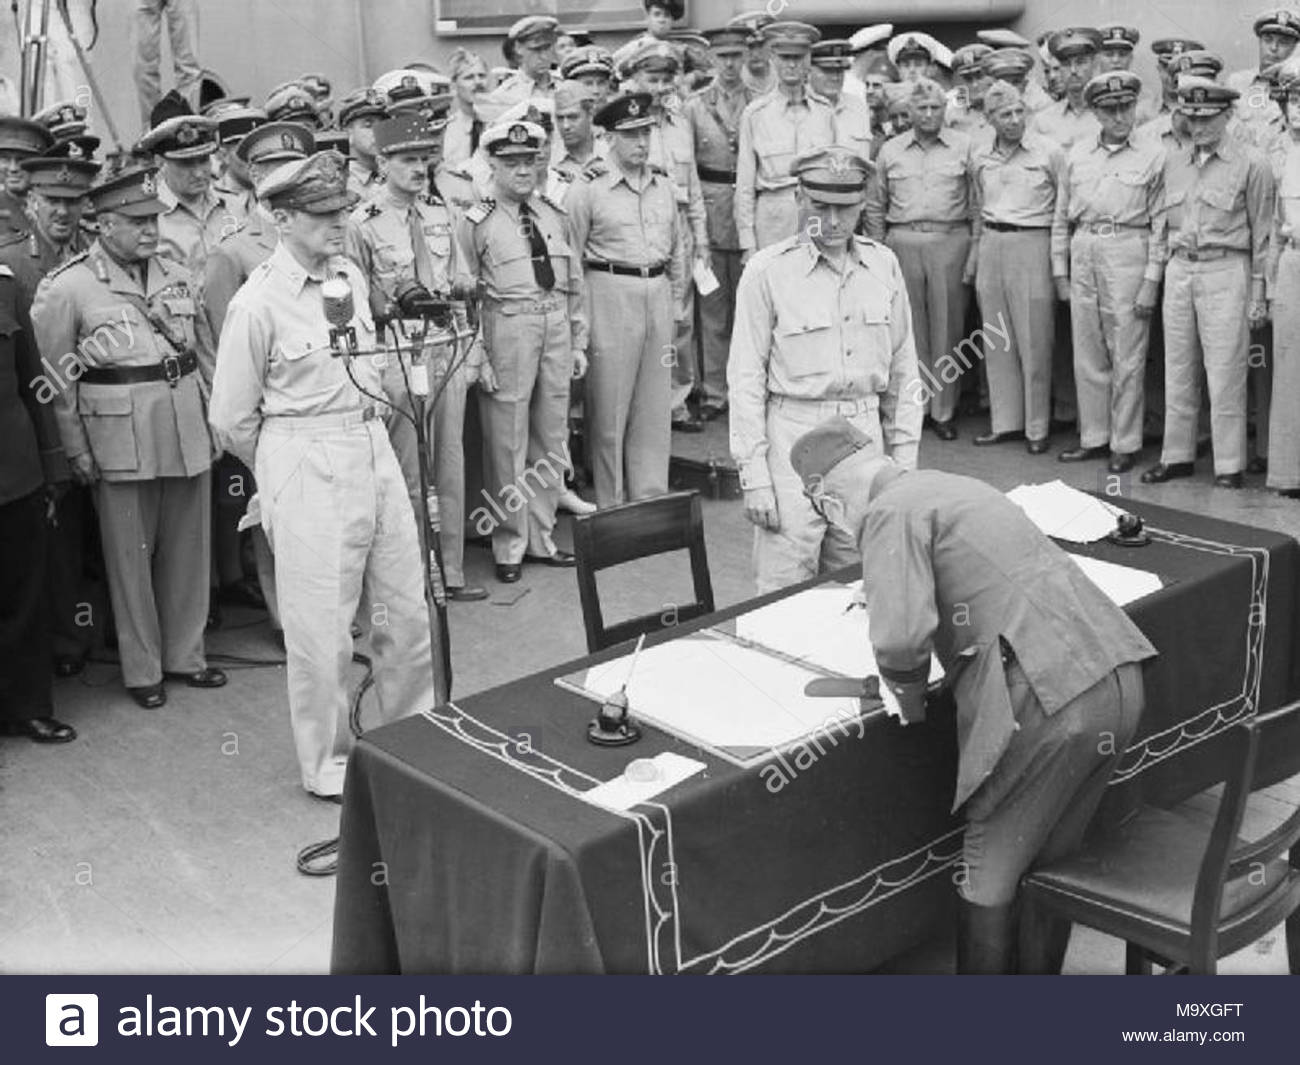 Japanese Surrender at Tokyo Bay, 2 September 1945 General Umezu Yoshijiro signs the surrender on behalf of the Imperial Japanese Army on board USS MISSOURI in Tokyo Bay. - Stock Image